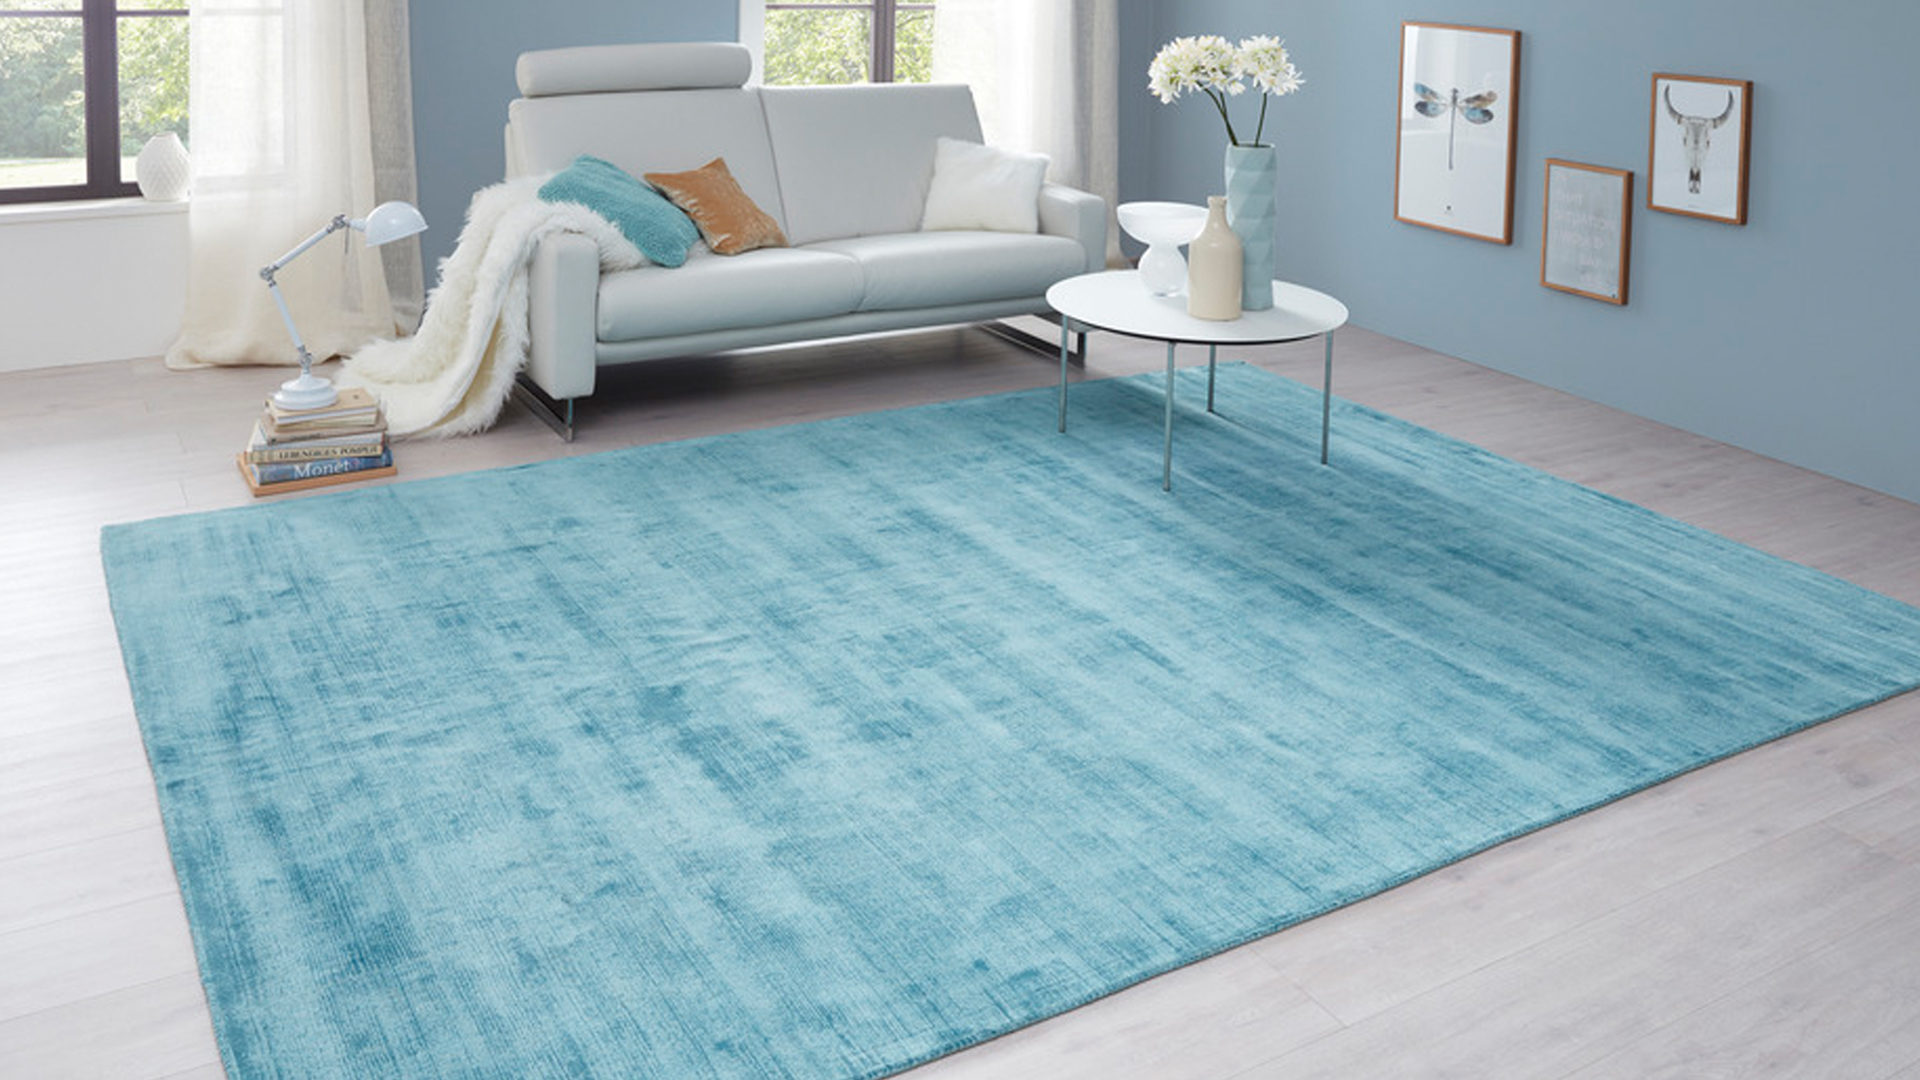 Handwebteppich Interliving aus Textil in Blau Interliving Teppich Serie A-8050 Türkisfarben – ca. 170 x 240 cm